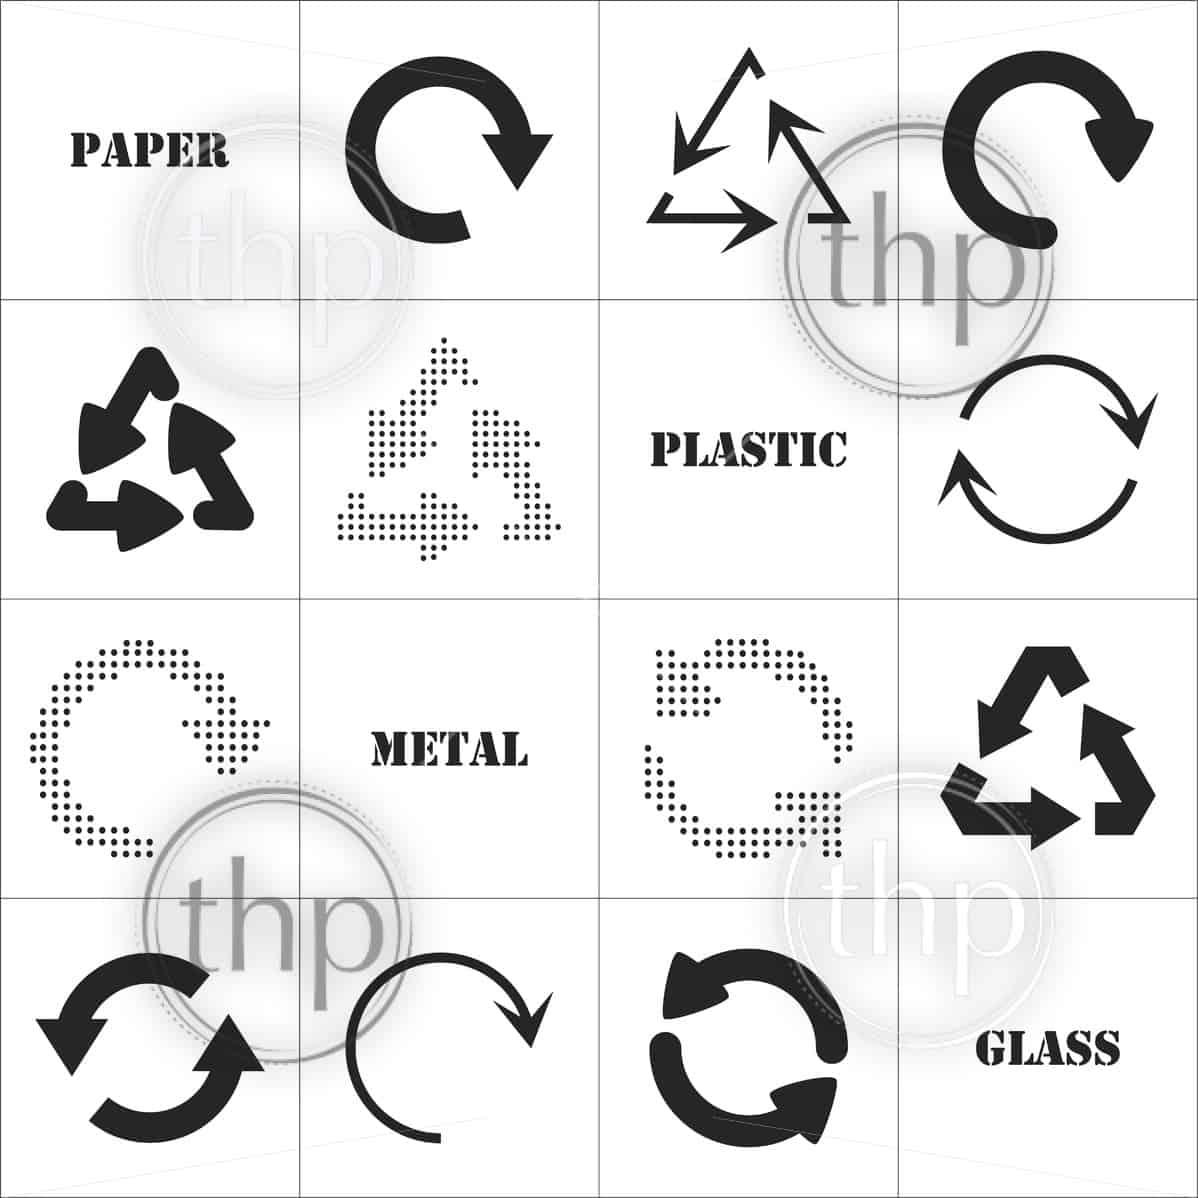 Simple Flat Design Recycle Symbols In Black Isolated On White Photo